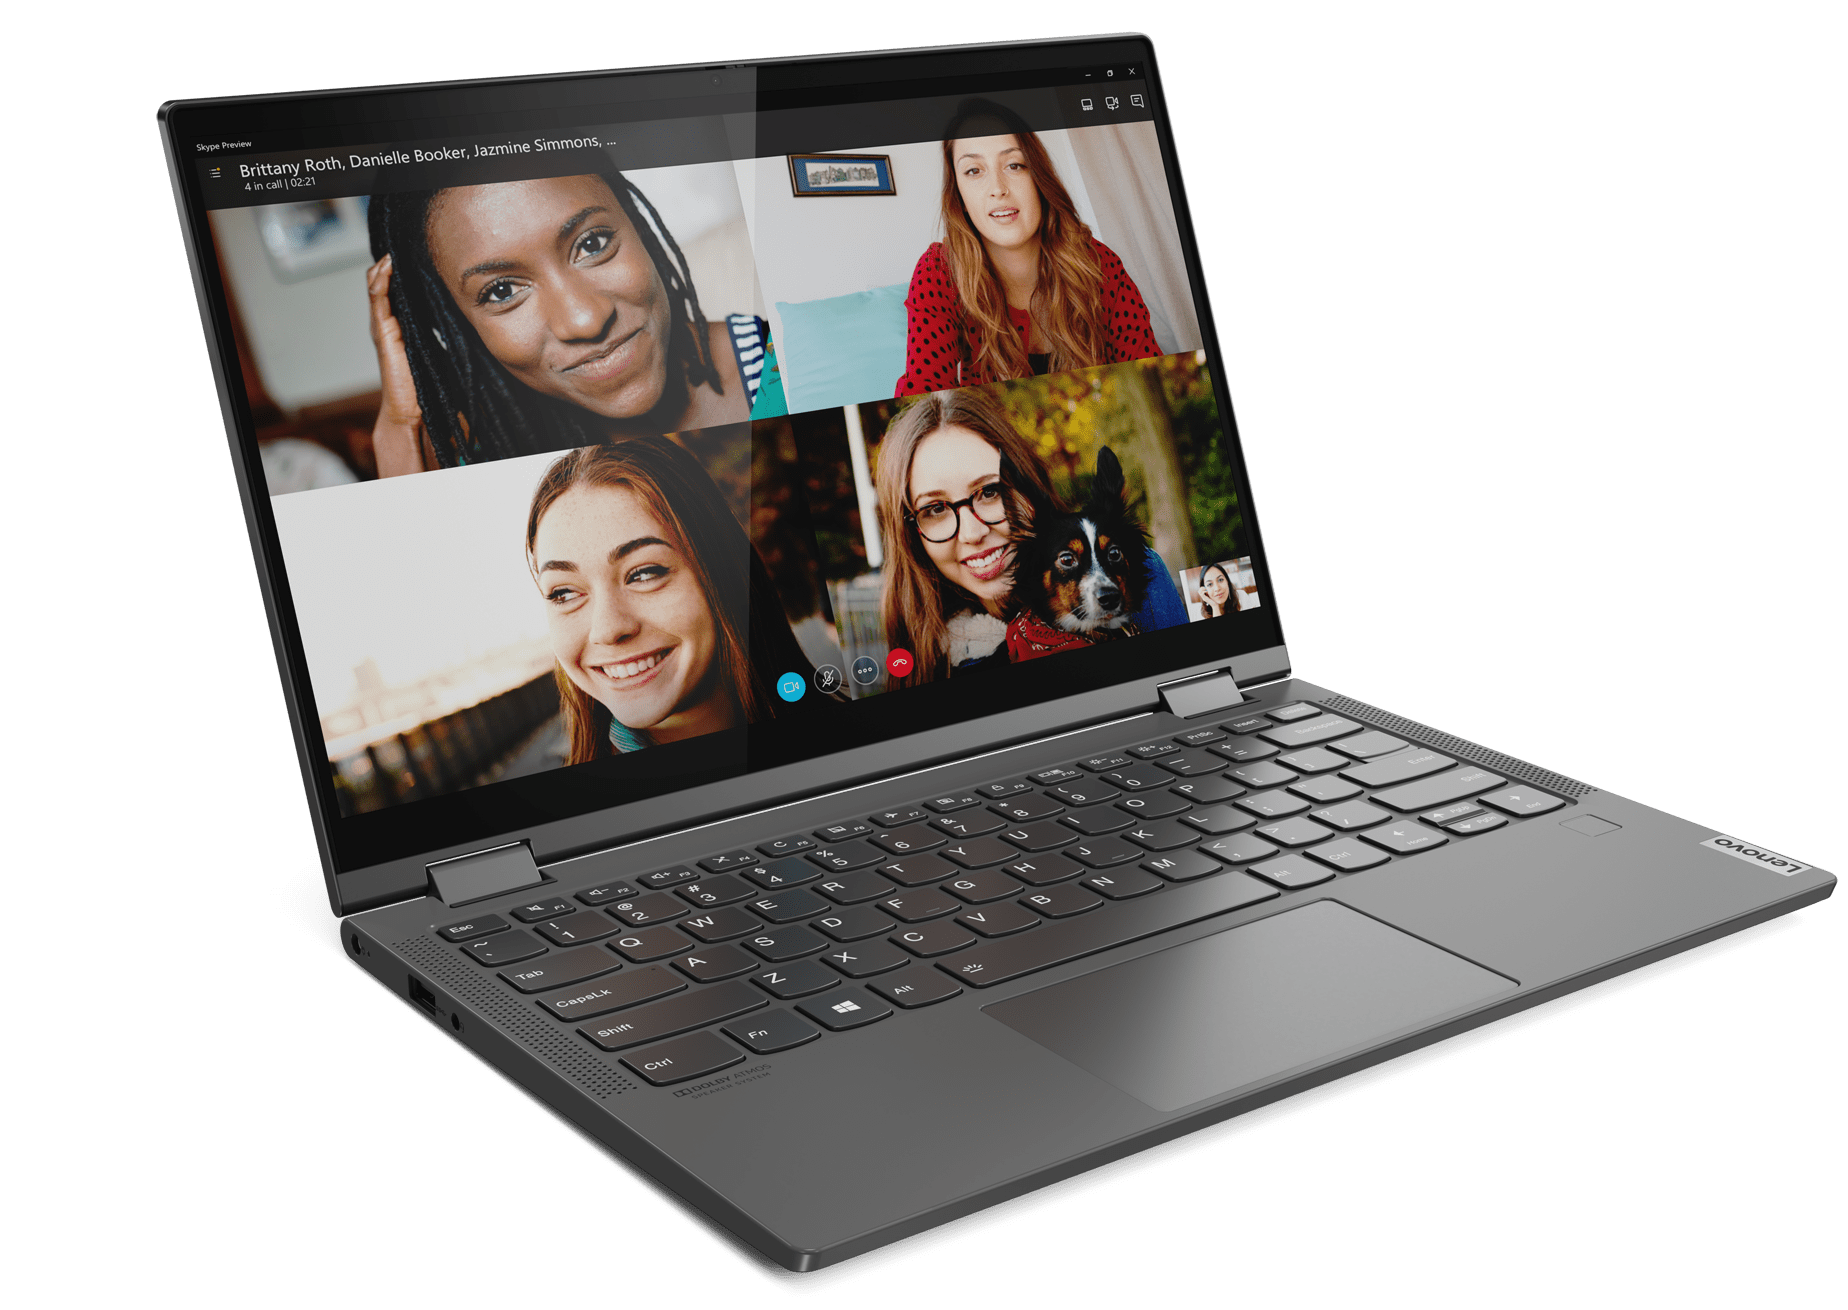 The new 13-inch Yoga C640 is Lenovo's most compact 2-in-1 laptop built for consumers.